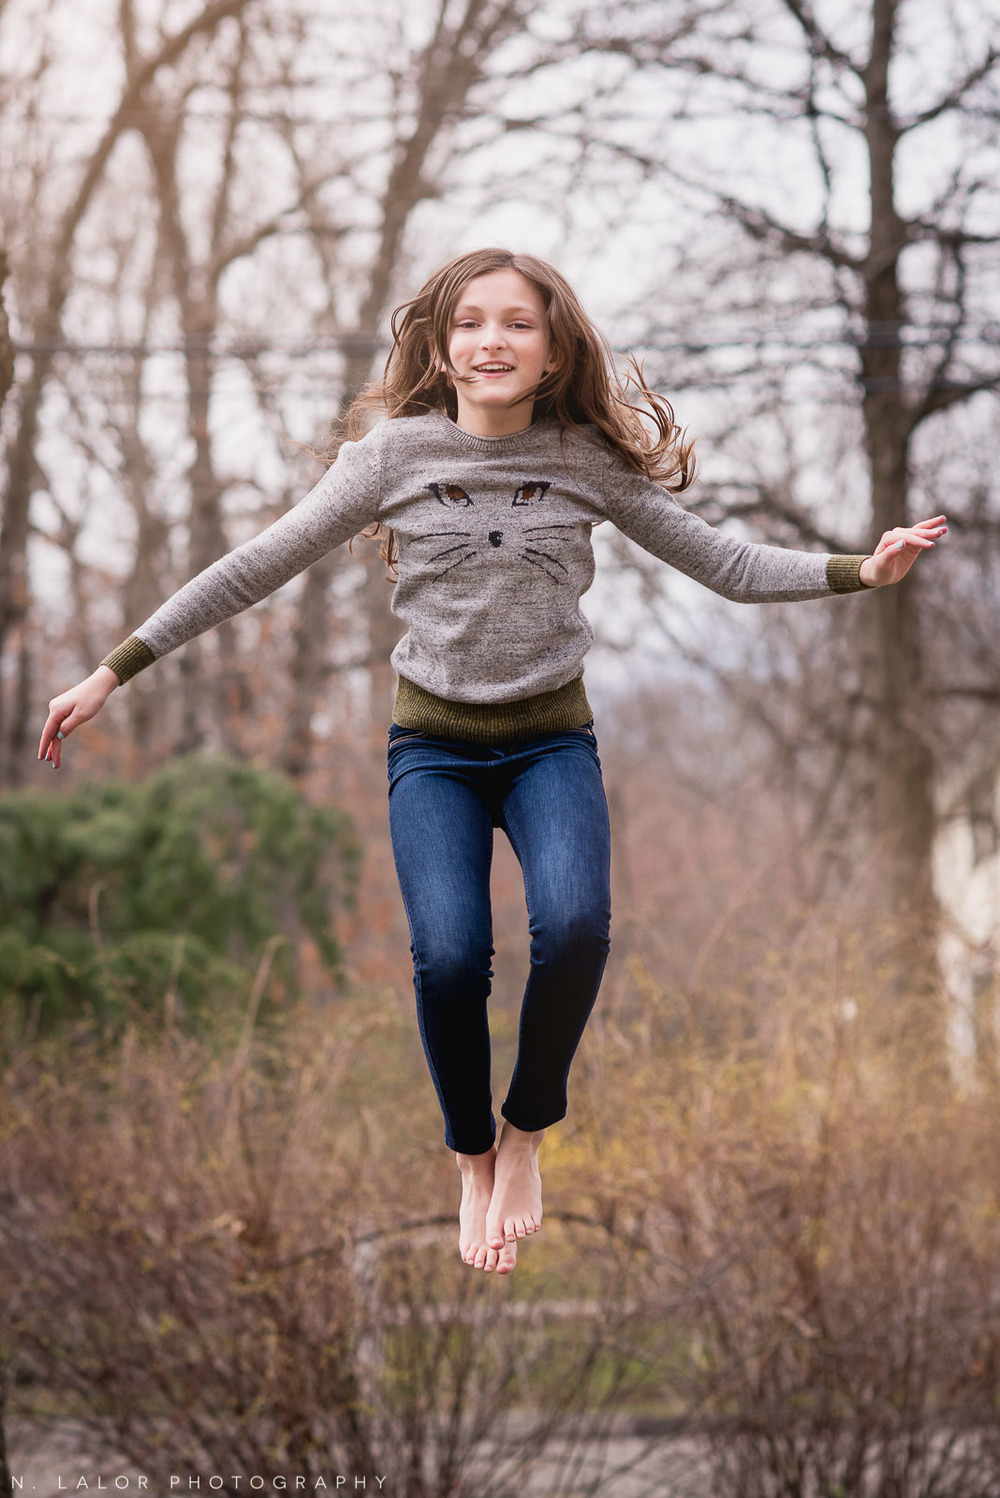 Flying through the air.. a portrait of a tween girl by N. Lalor Photography.